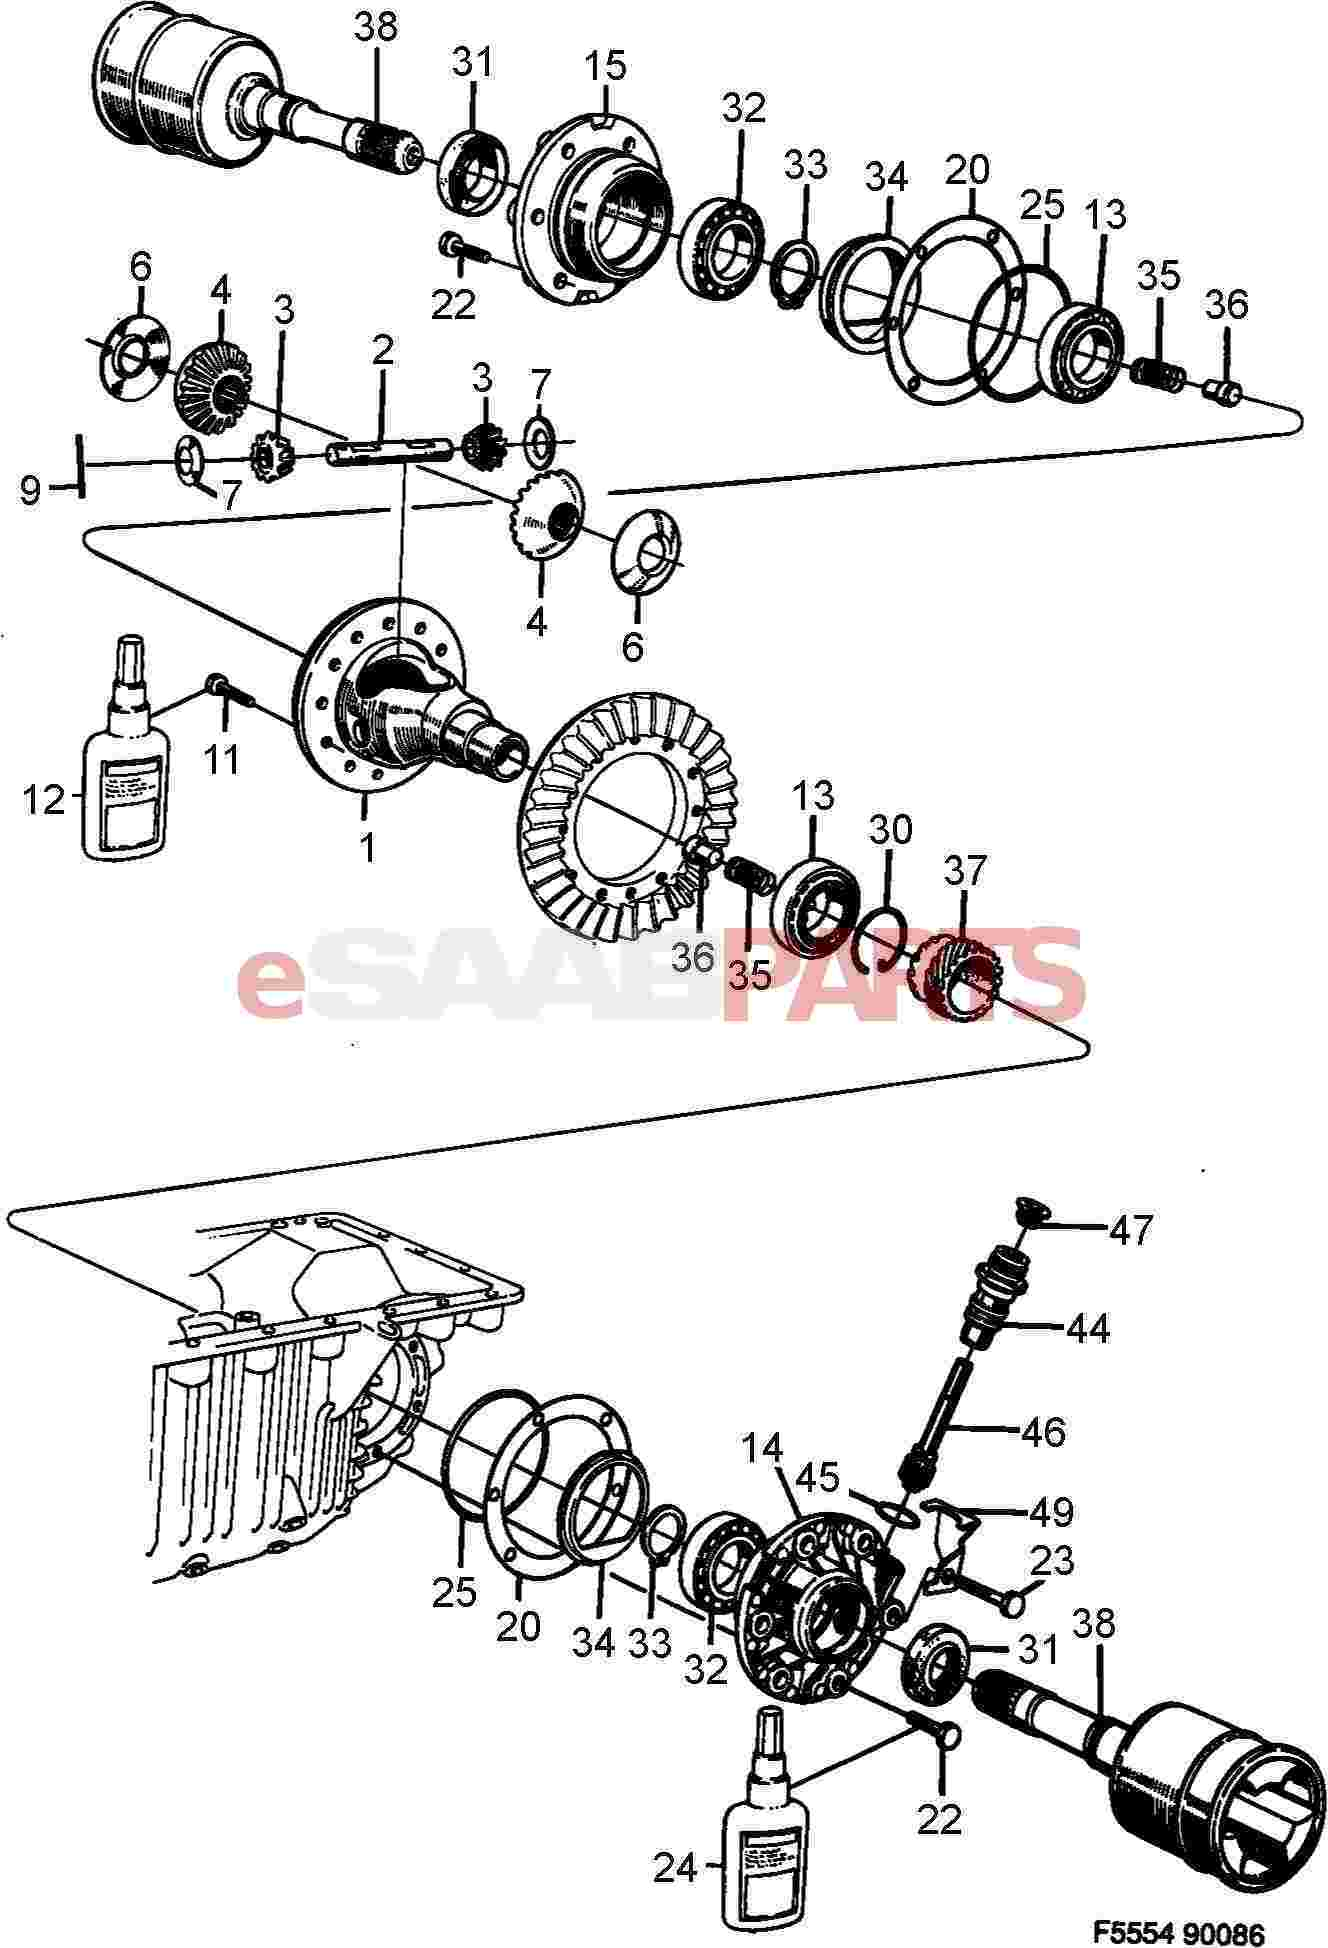 Saab 900 Wiring Diagram Download Schematic Diagrams 1989 Transmission Trusted Cooling System